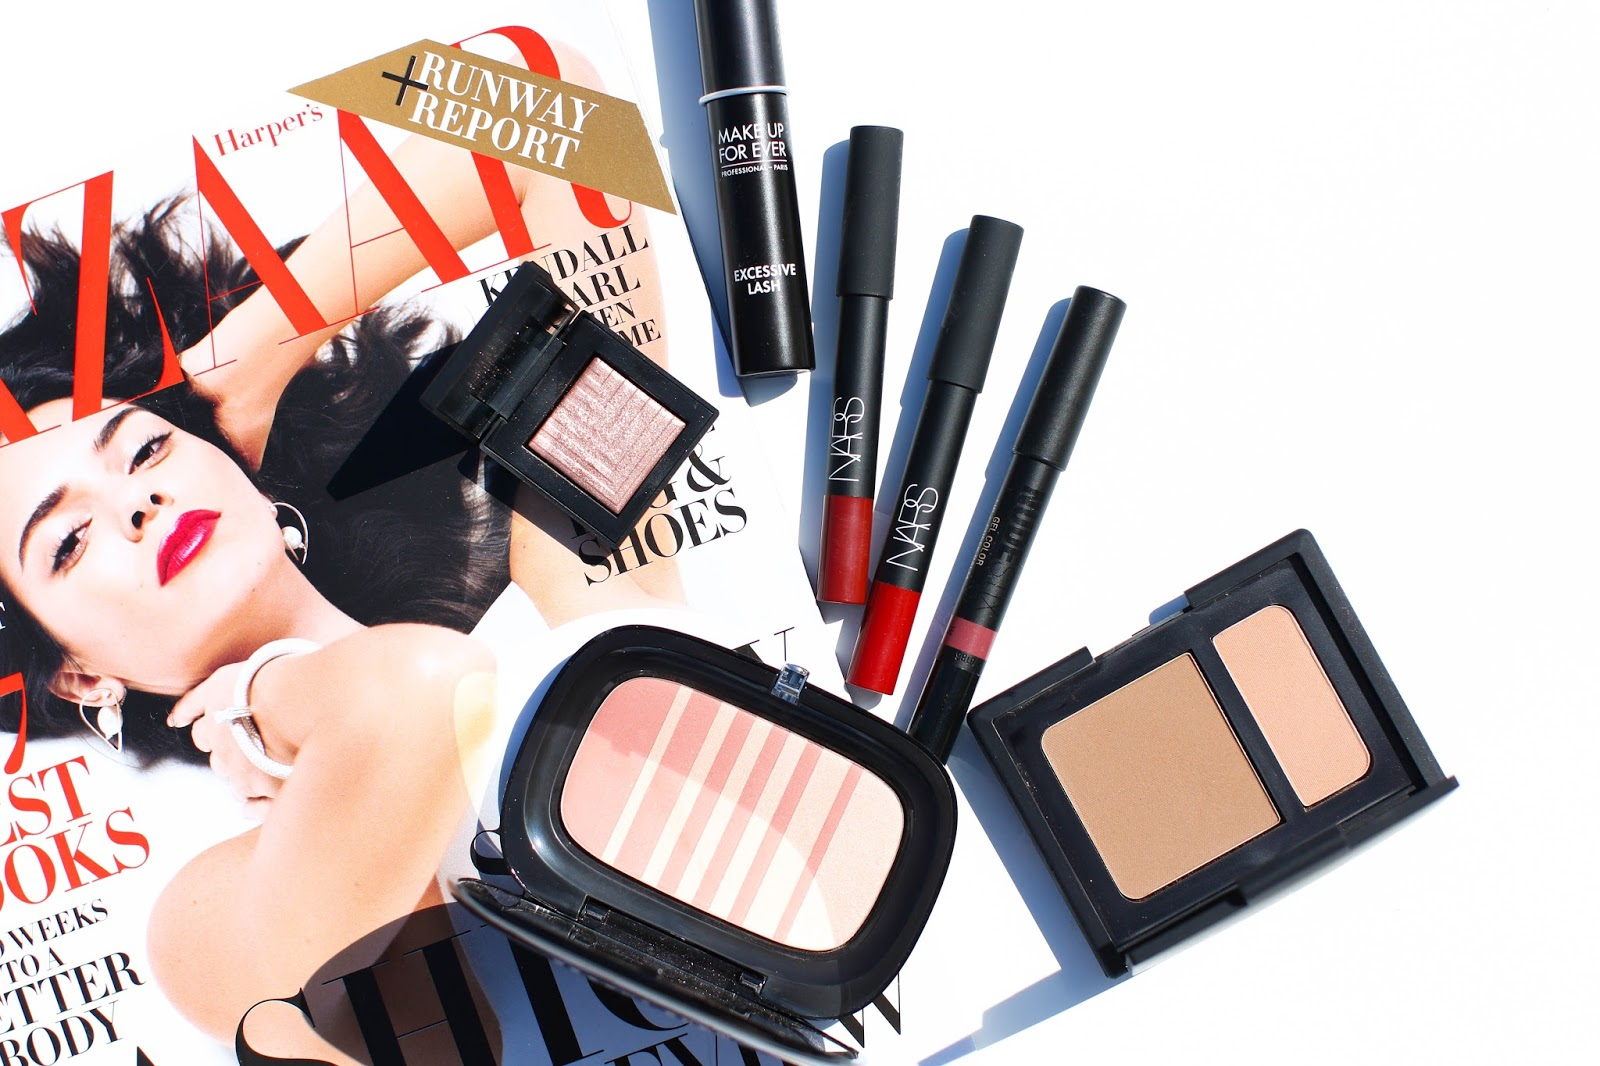 Review of NARS Fall 2016